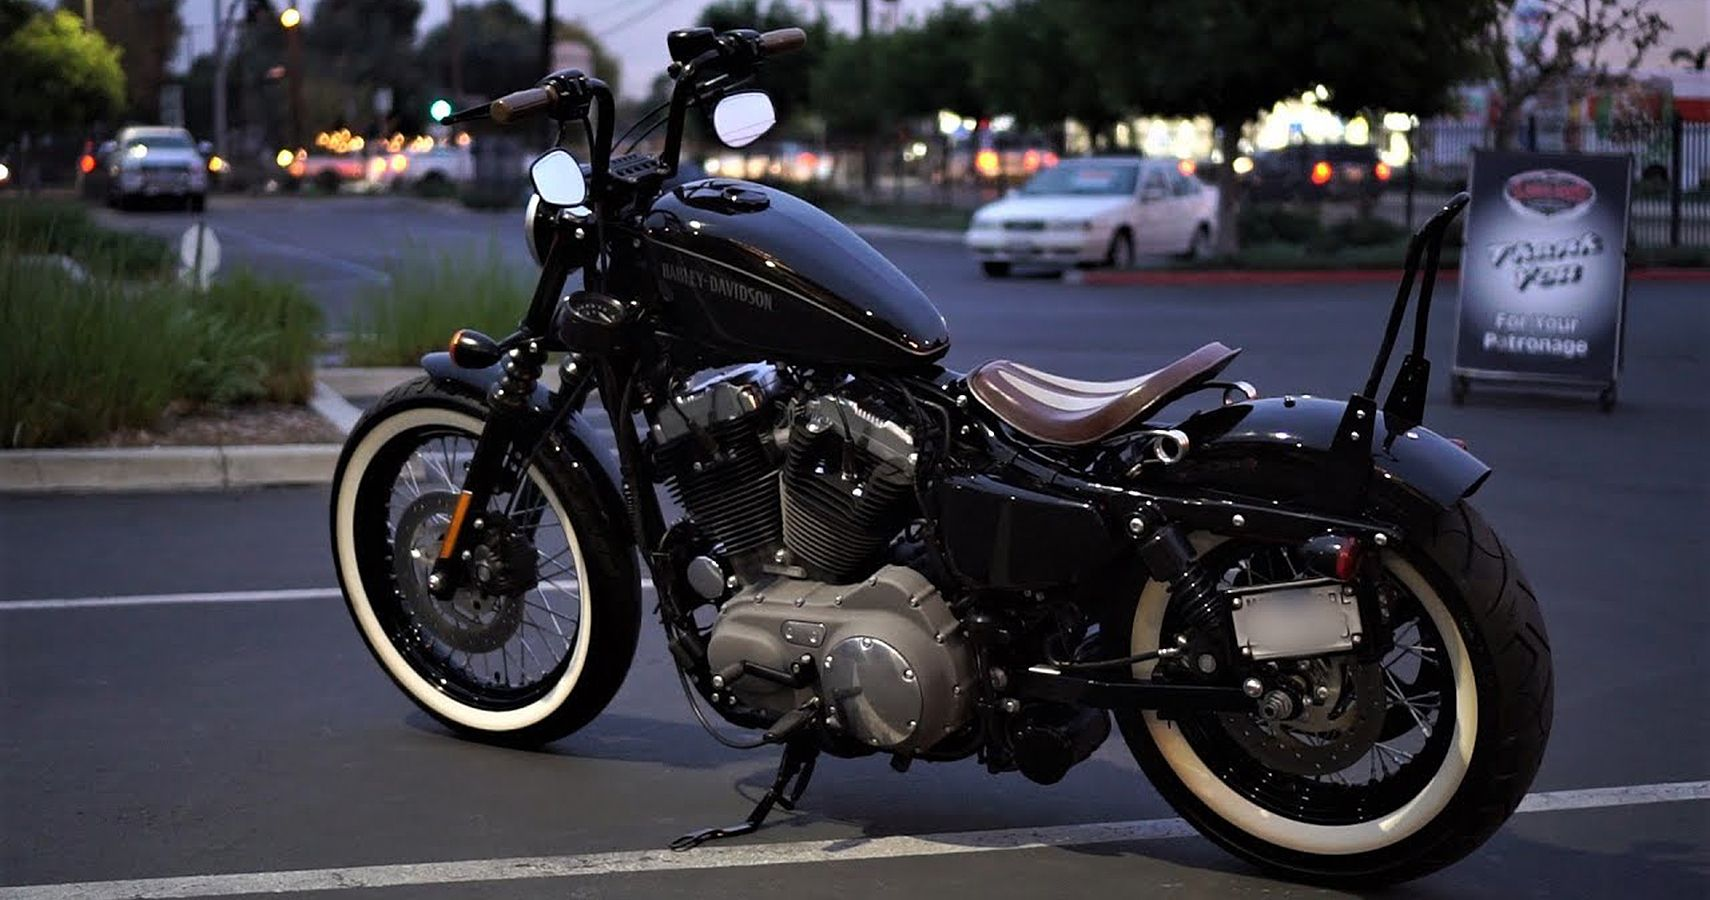 Here's What You Need To Know About The Harley-Davidson Nightster Motorcycle